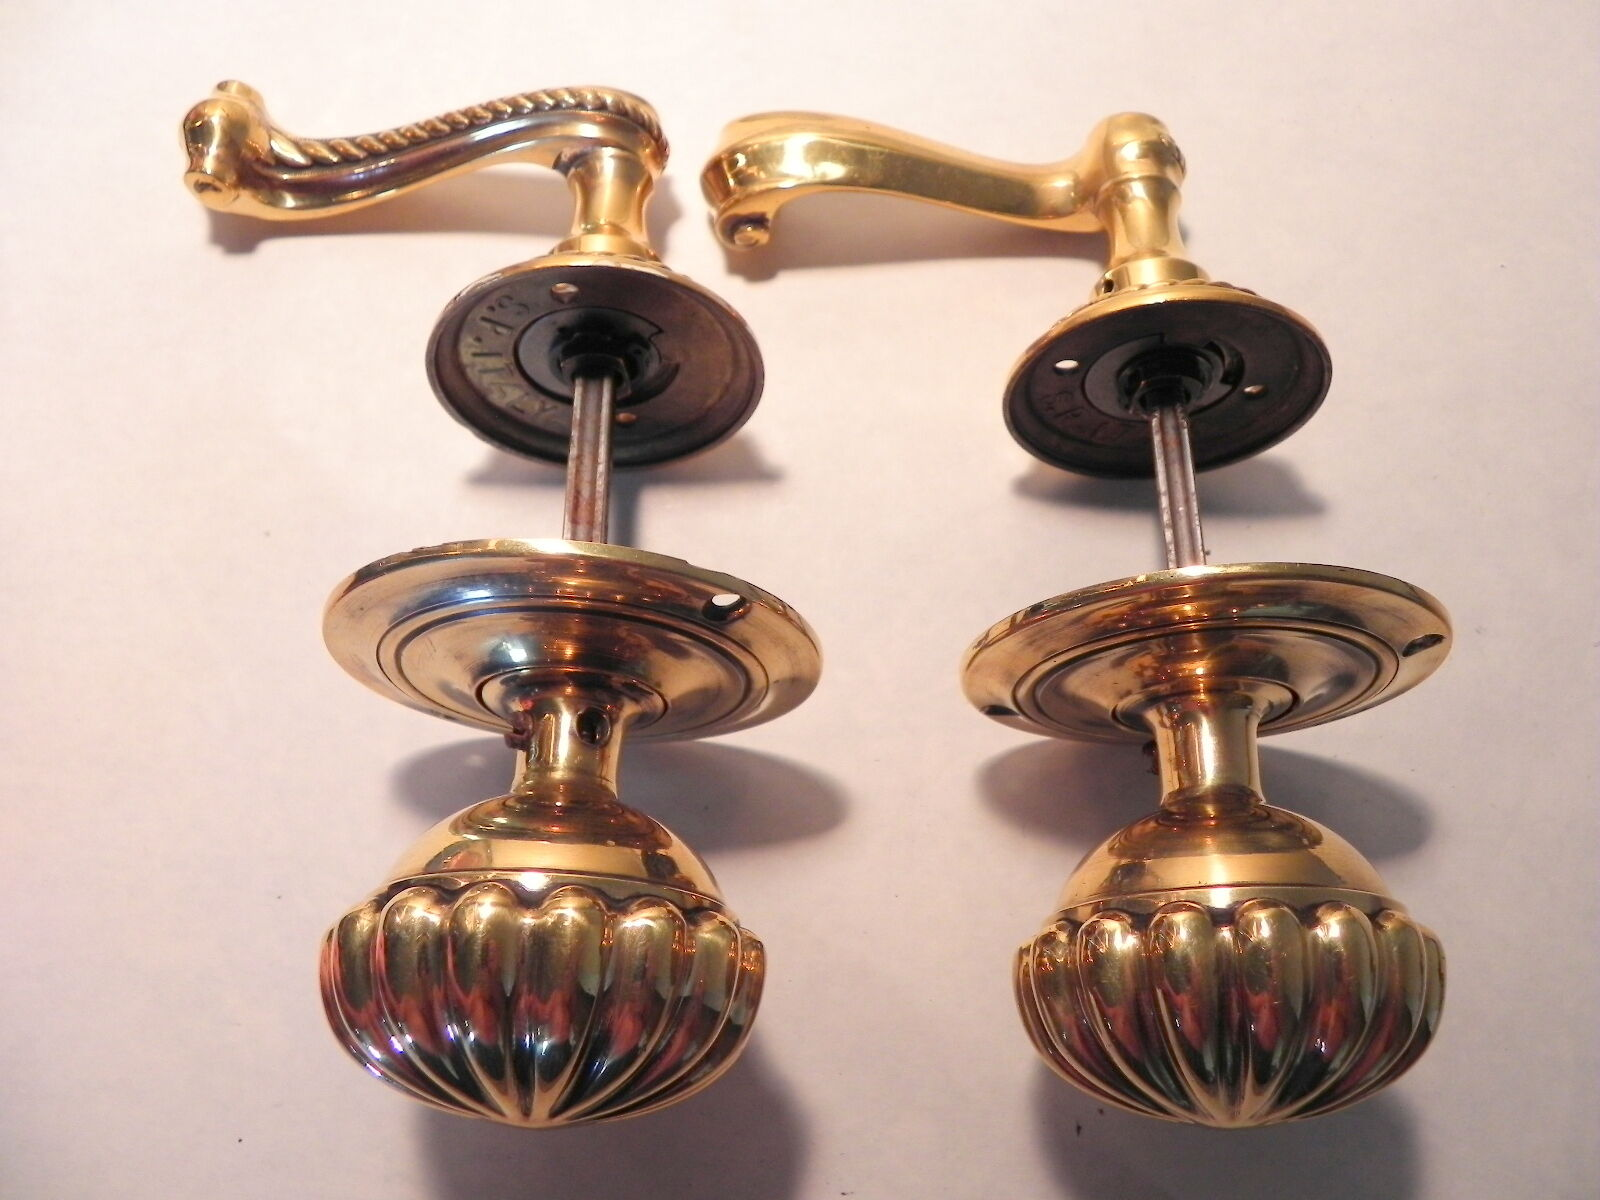 Vintage & Rare Set Of Large Fancy Solid Brass Door Knobs, Made In Italy